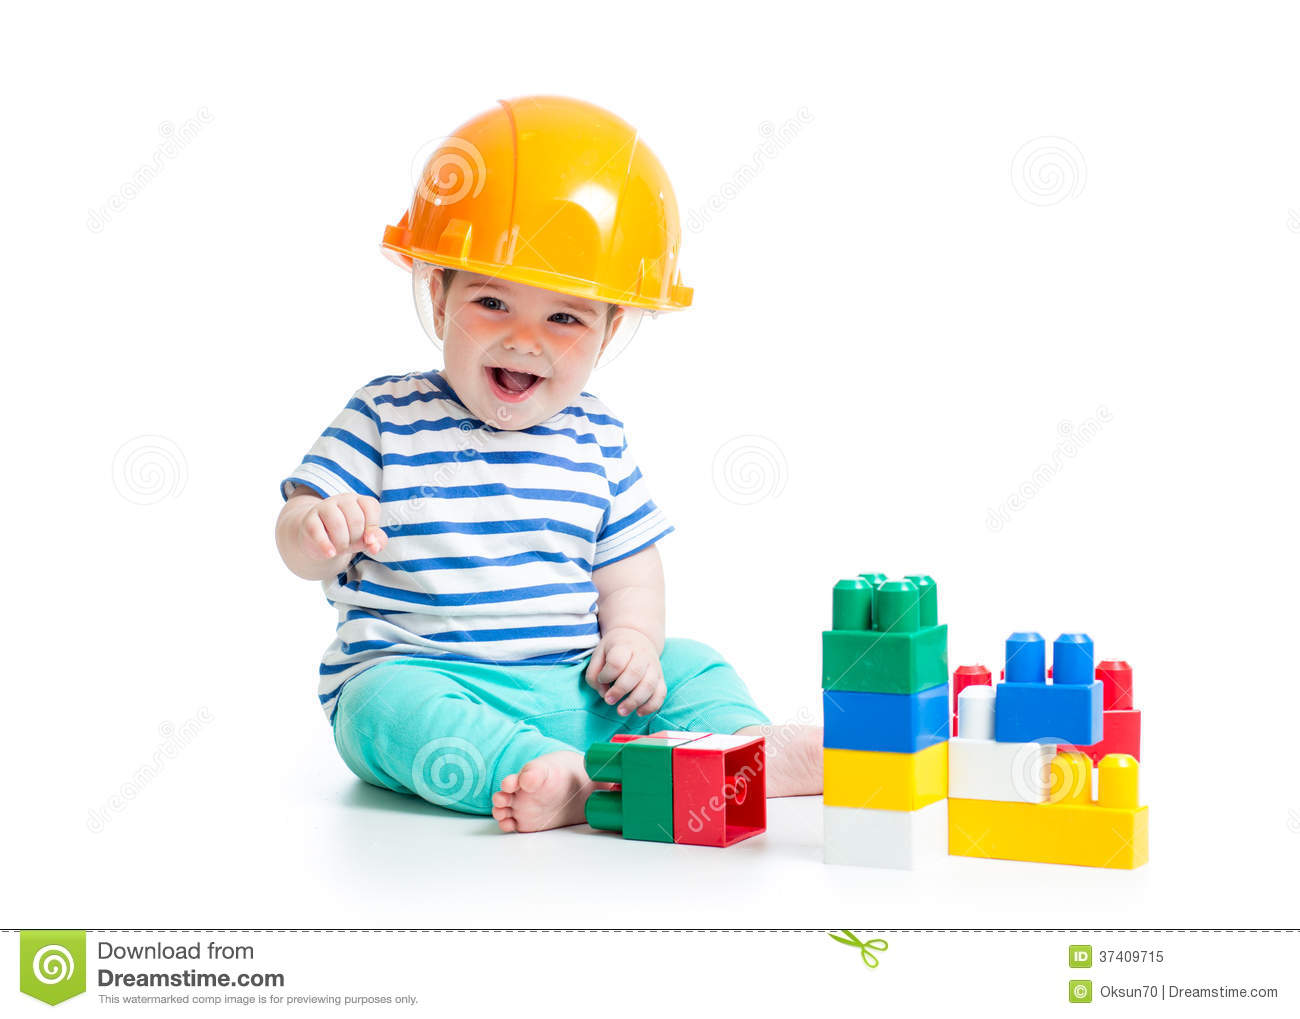 Building Toys For Babies : Baby boy in hard hat playing colorful building blocks